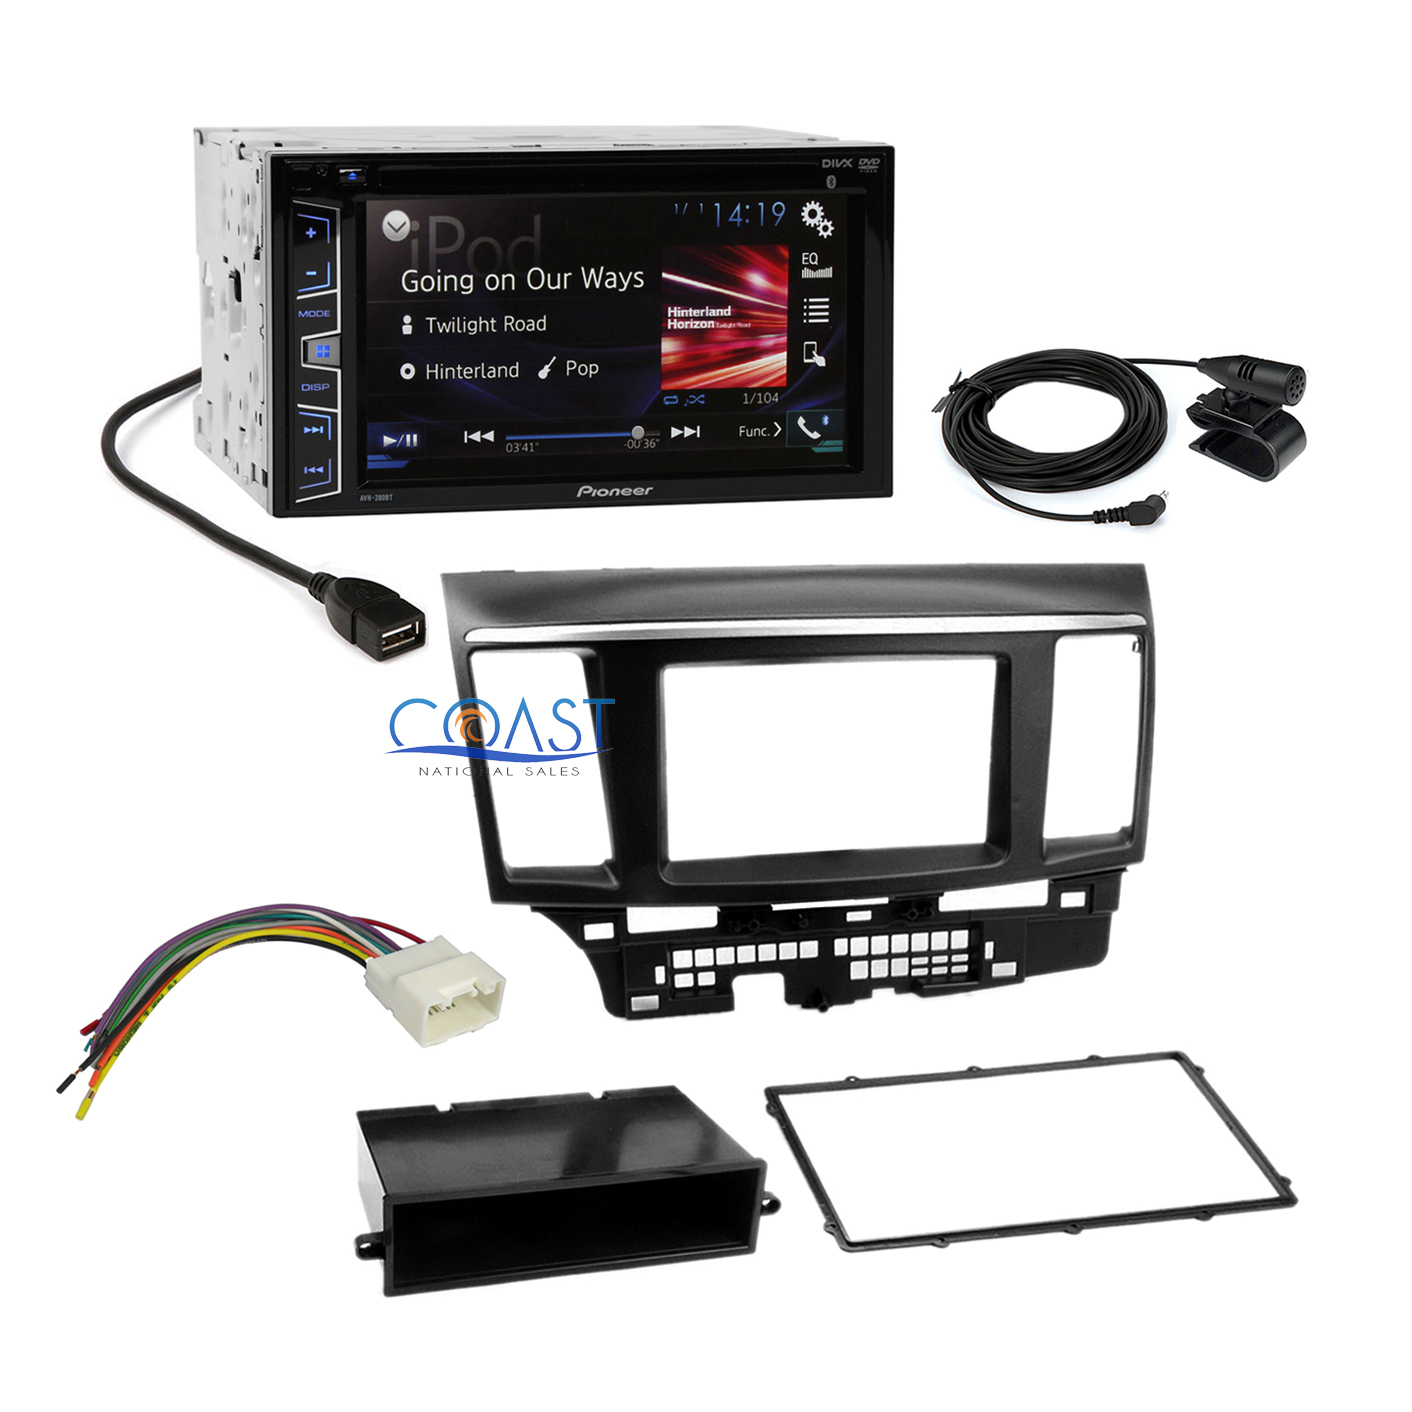 details about pioneer 2016 car radio stereo dash kit harness for 2007-13  mitsubishi lancer